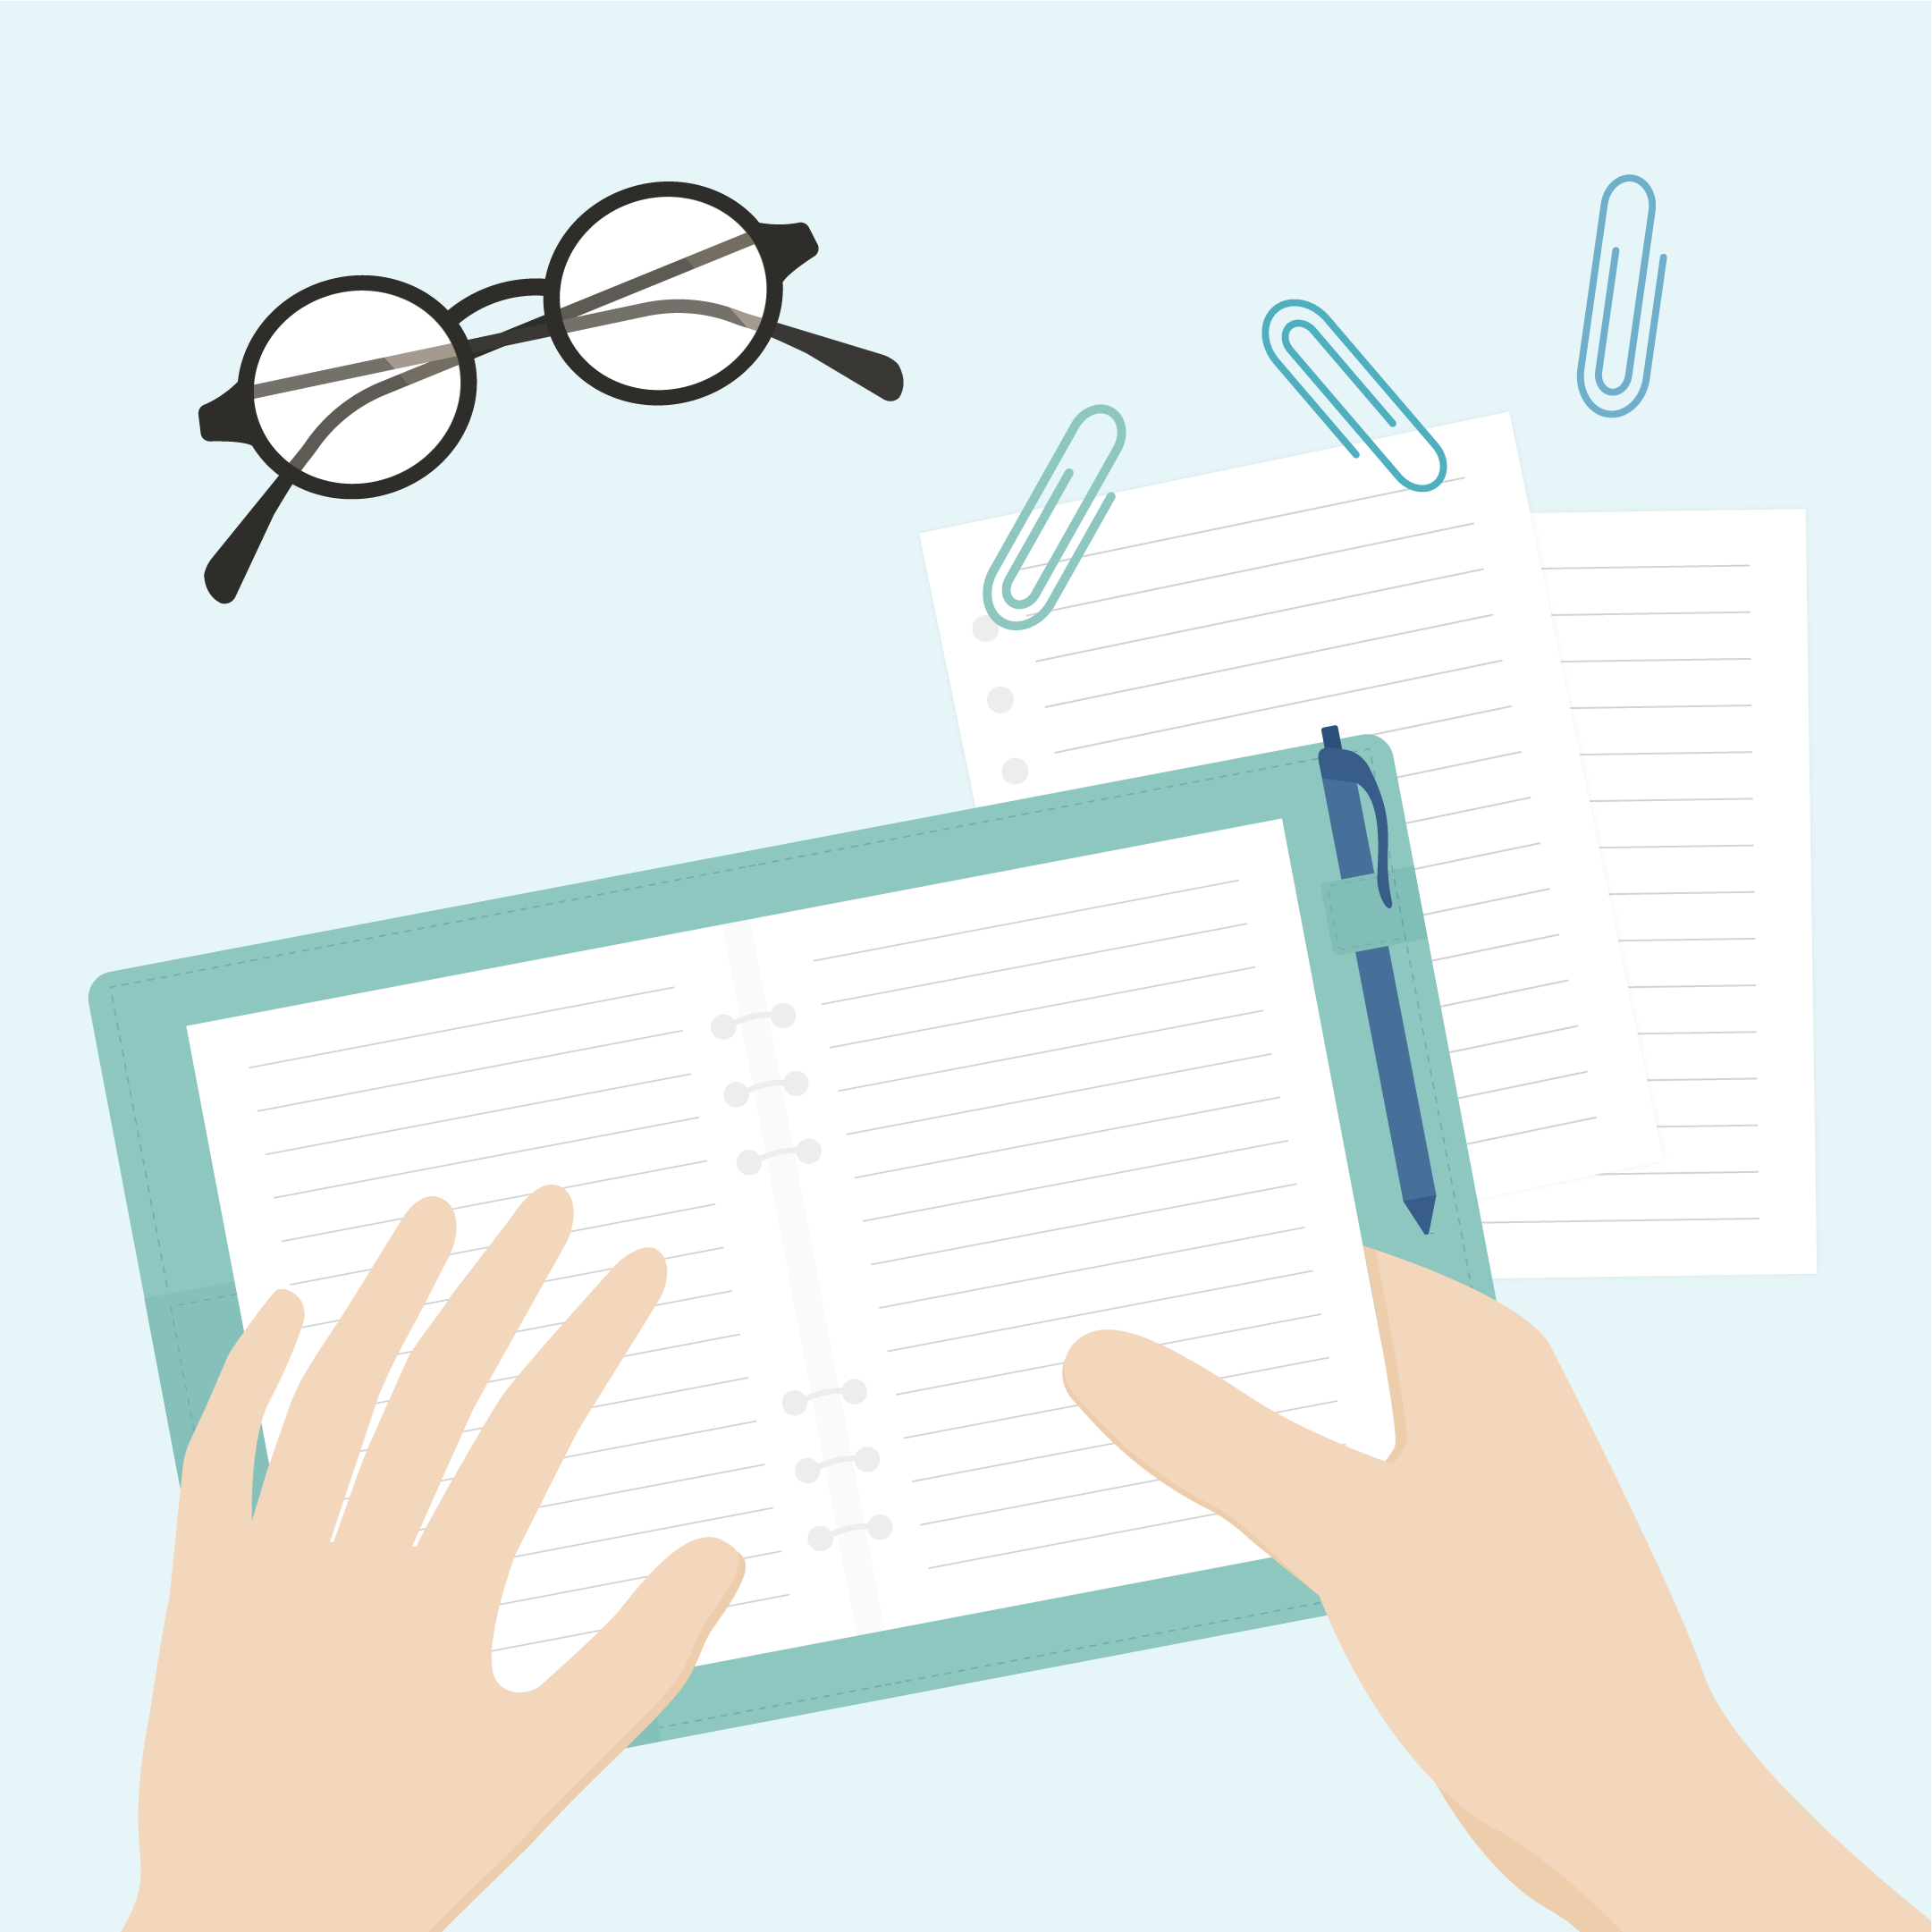 Flat lay, top view vector illustration of a desk: an open notebook & ballpoint pen with one hand on it and the other holding the page, paper clips, loose pages & eyeglasses in flat design style